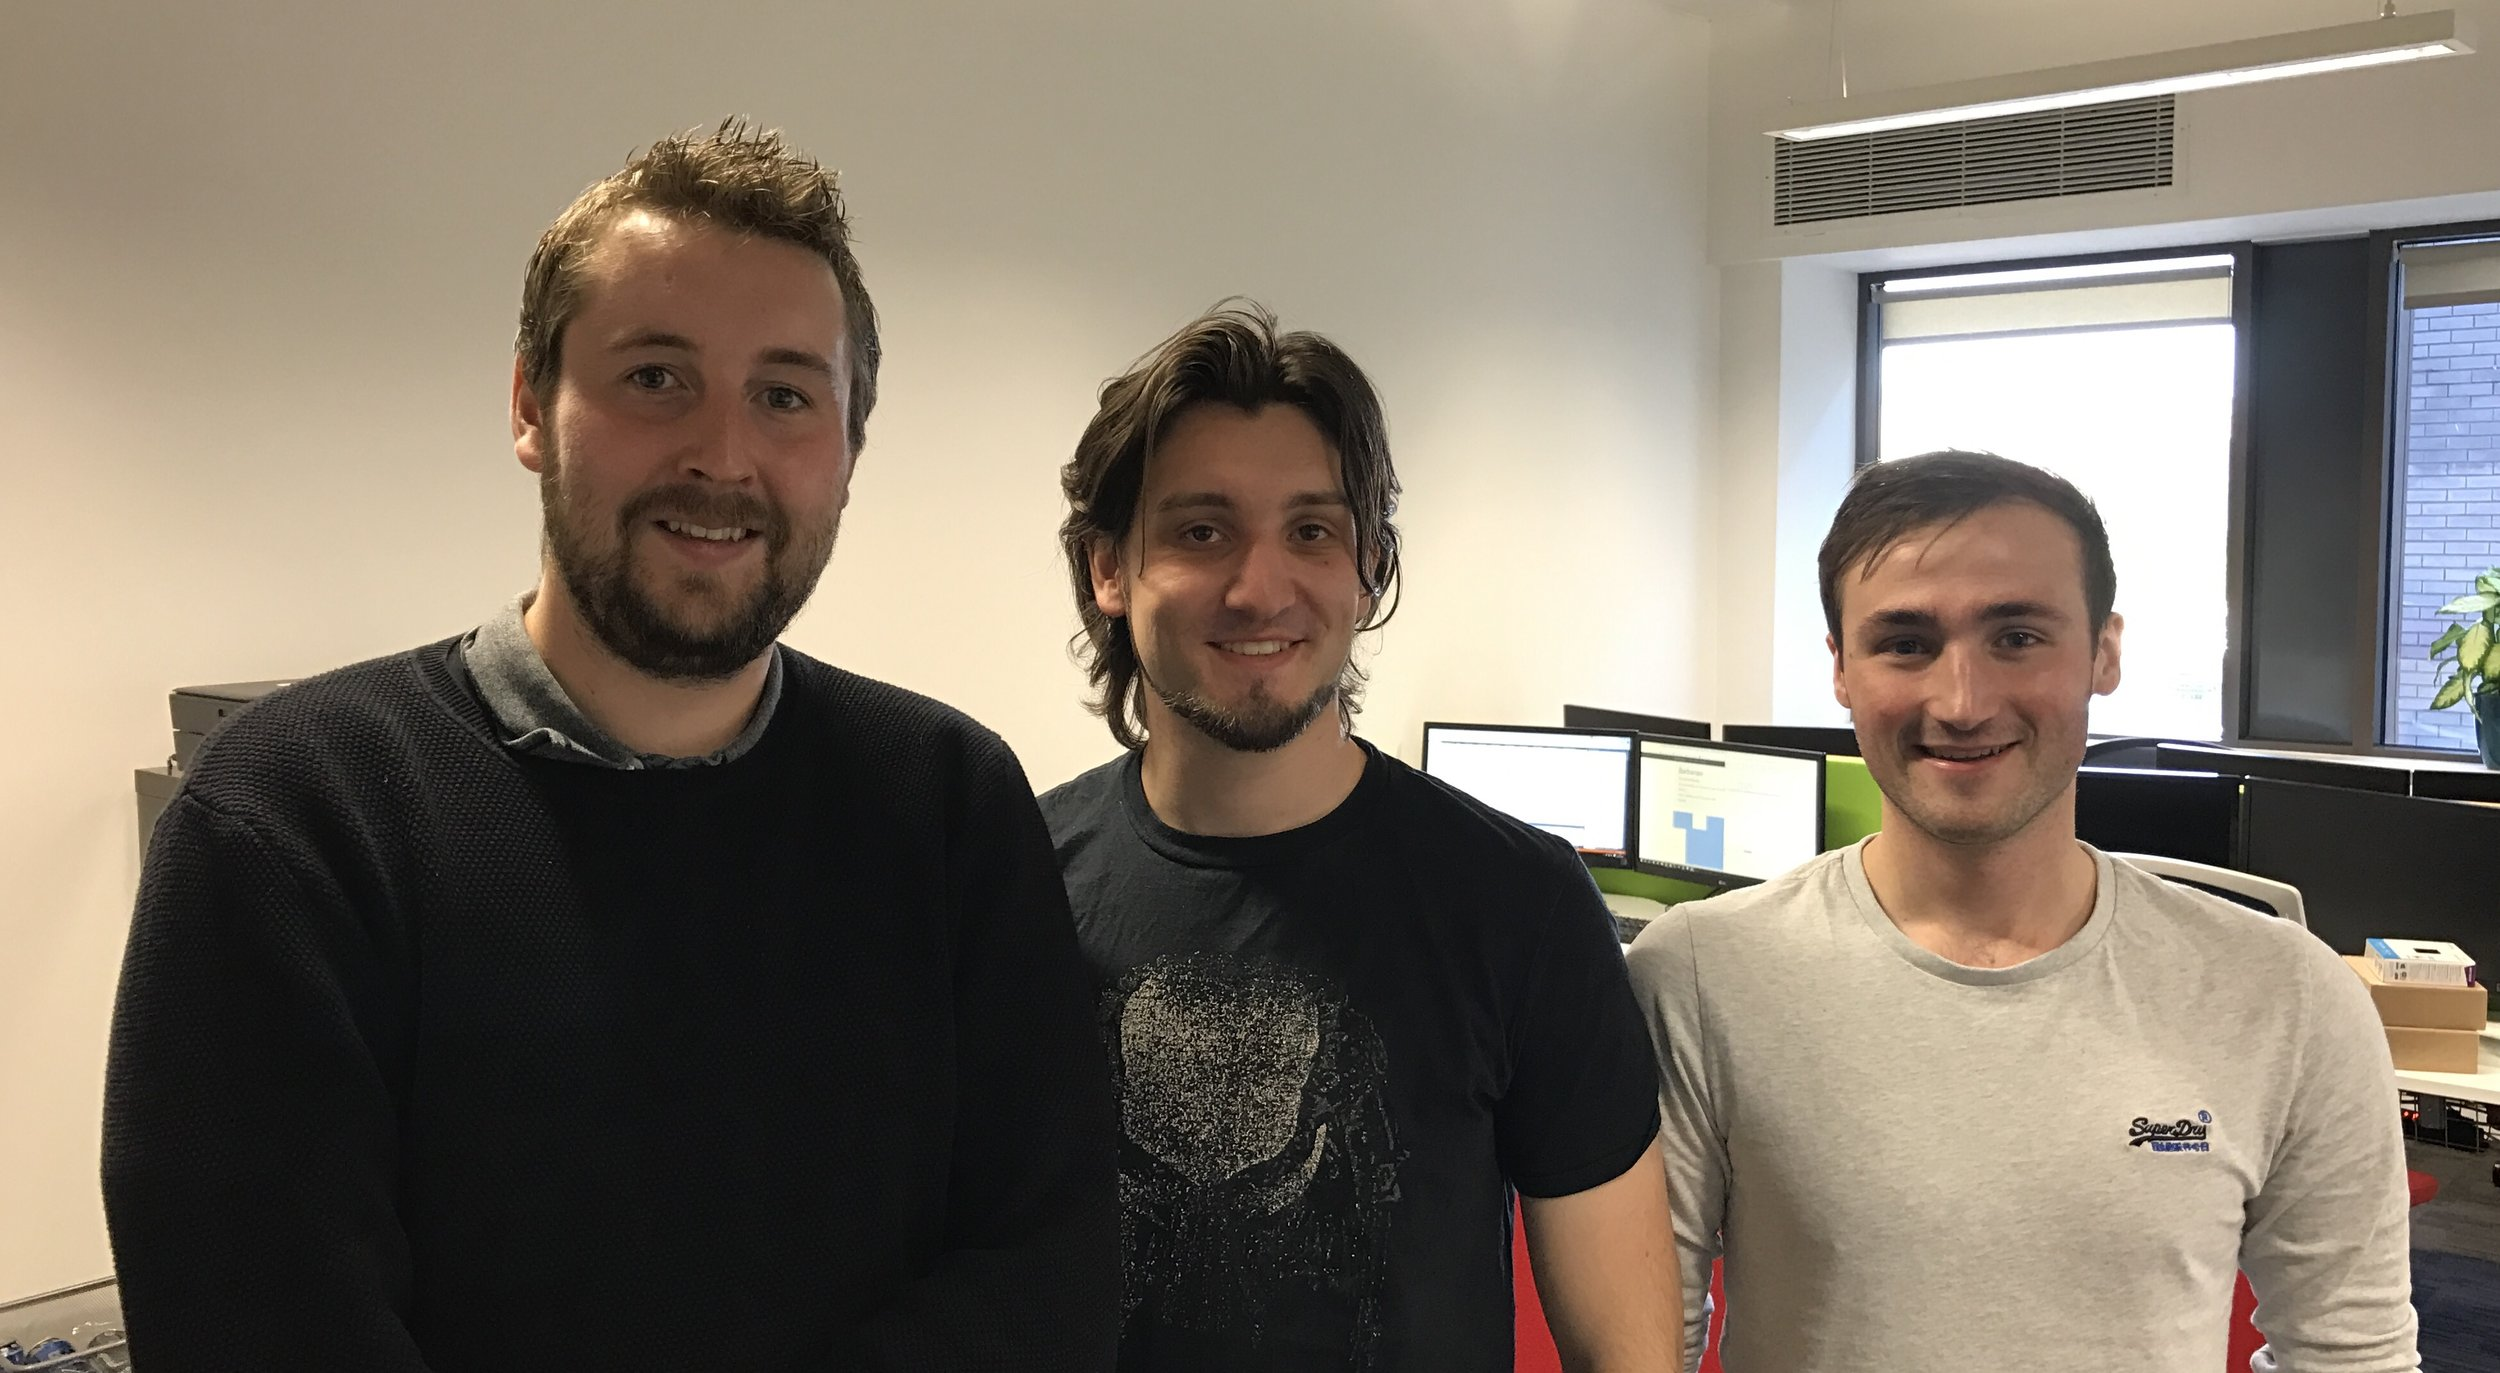 MD, Aaron, picture here with Dave and Dave, new staff member and intern.